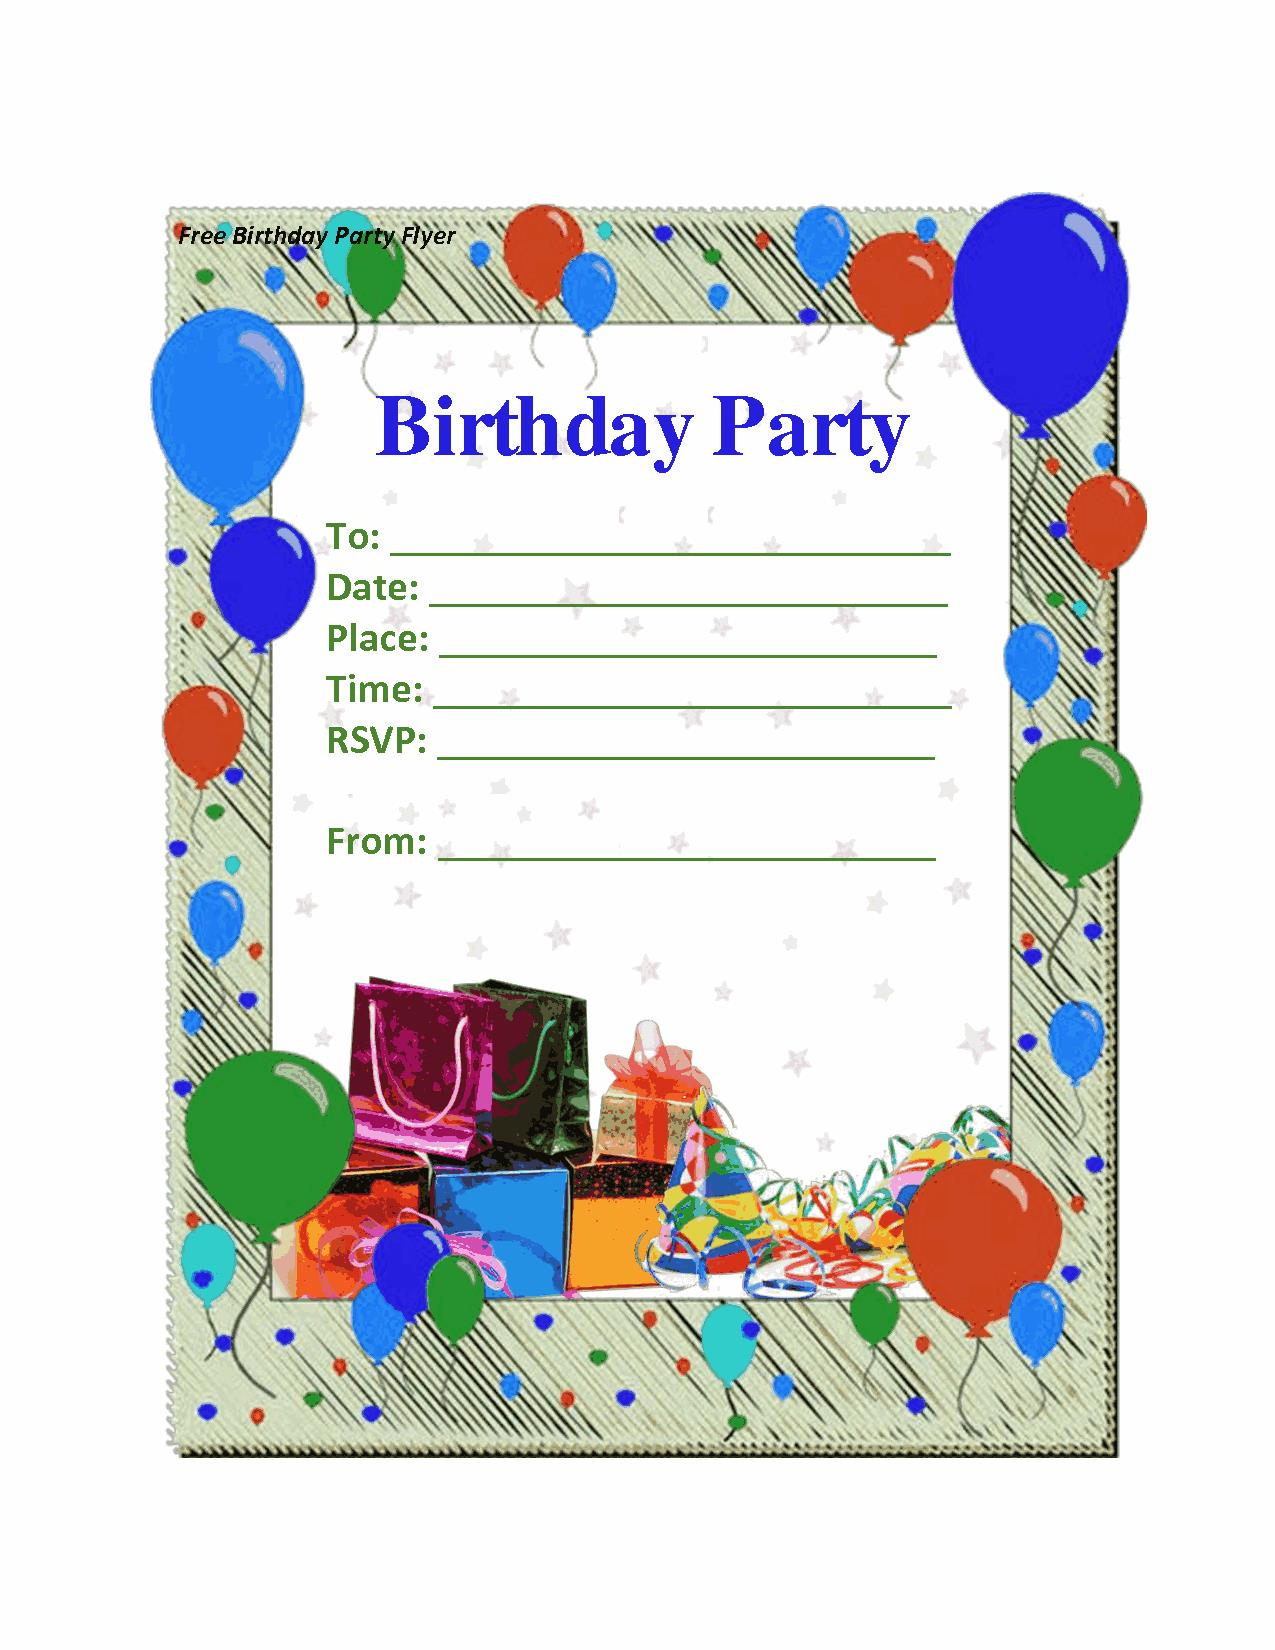 free printable invitation cards for birthday party for kids ; free_birthday_party_invitation_templates_to_create_your_own_mesmerizing_birthday_invitation_design_199201616_9